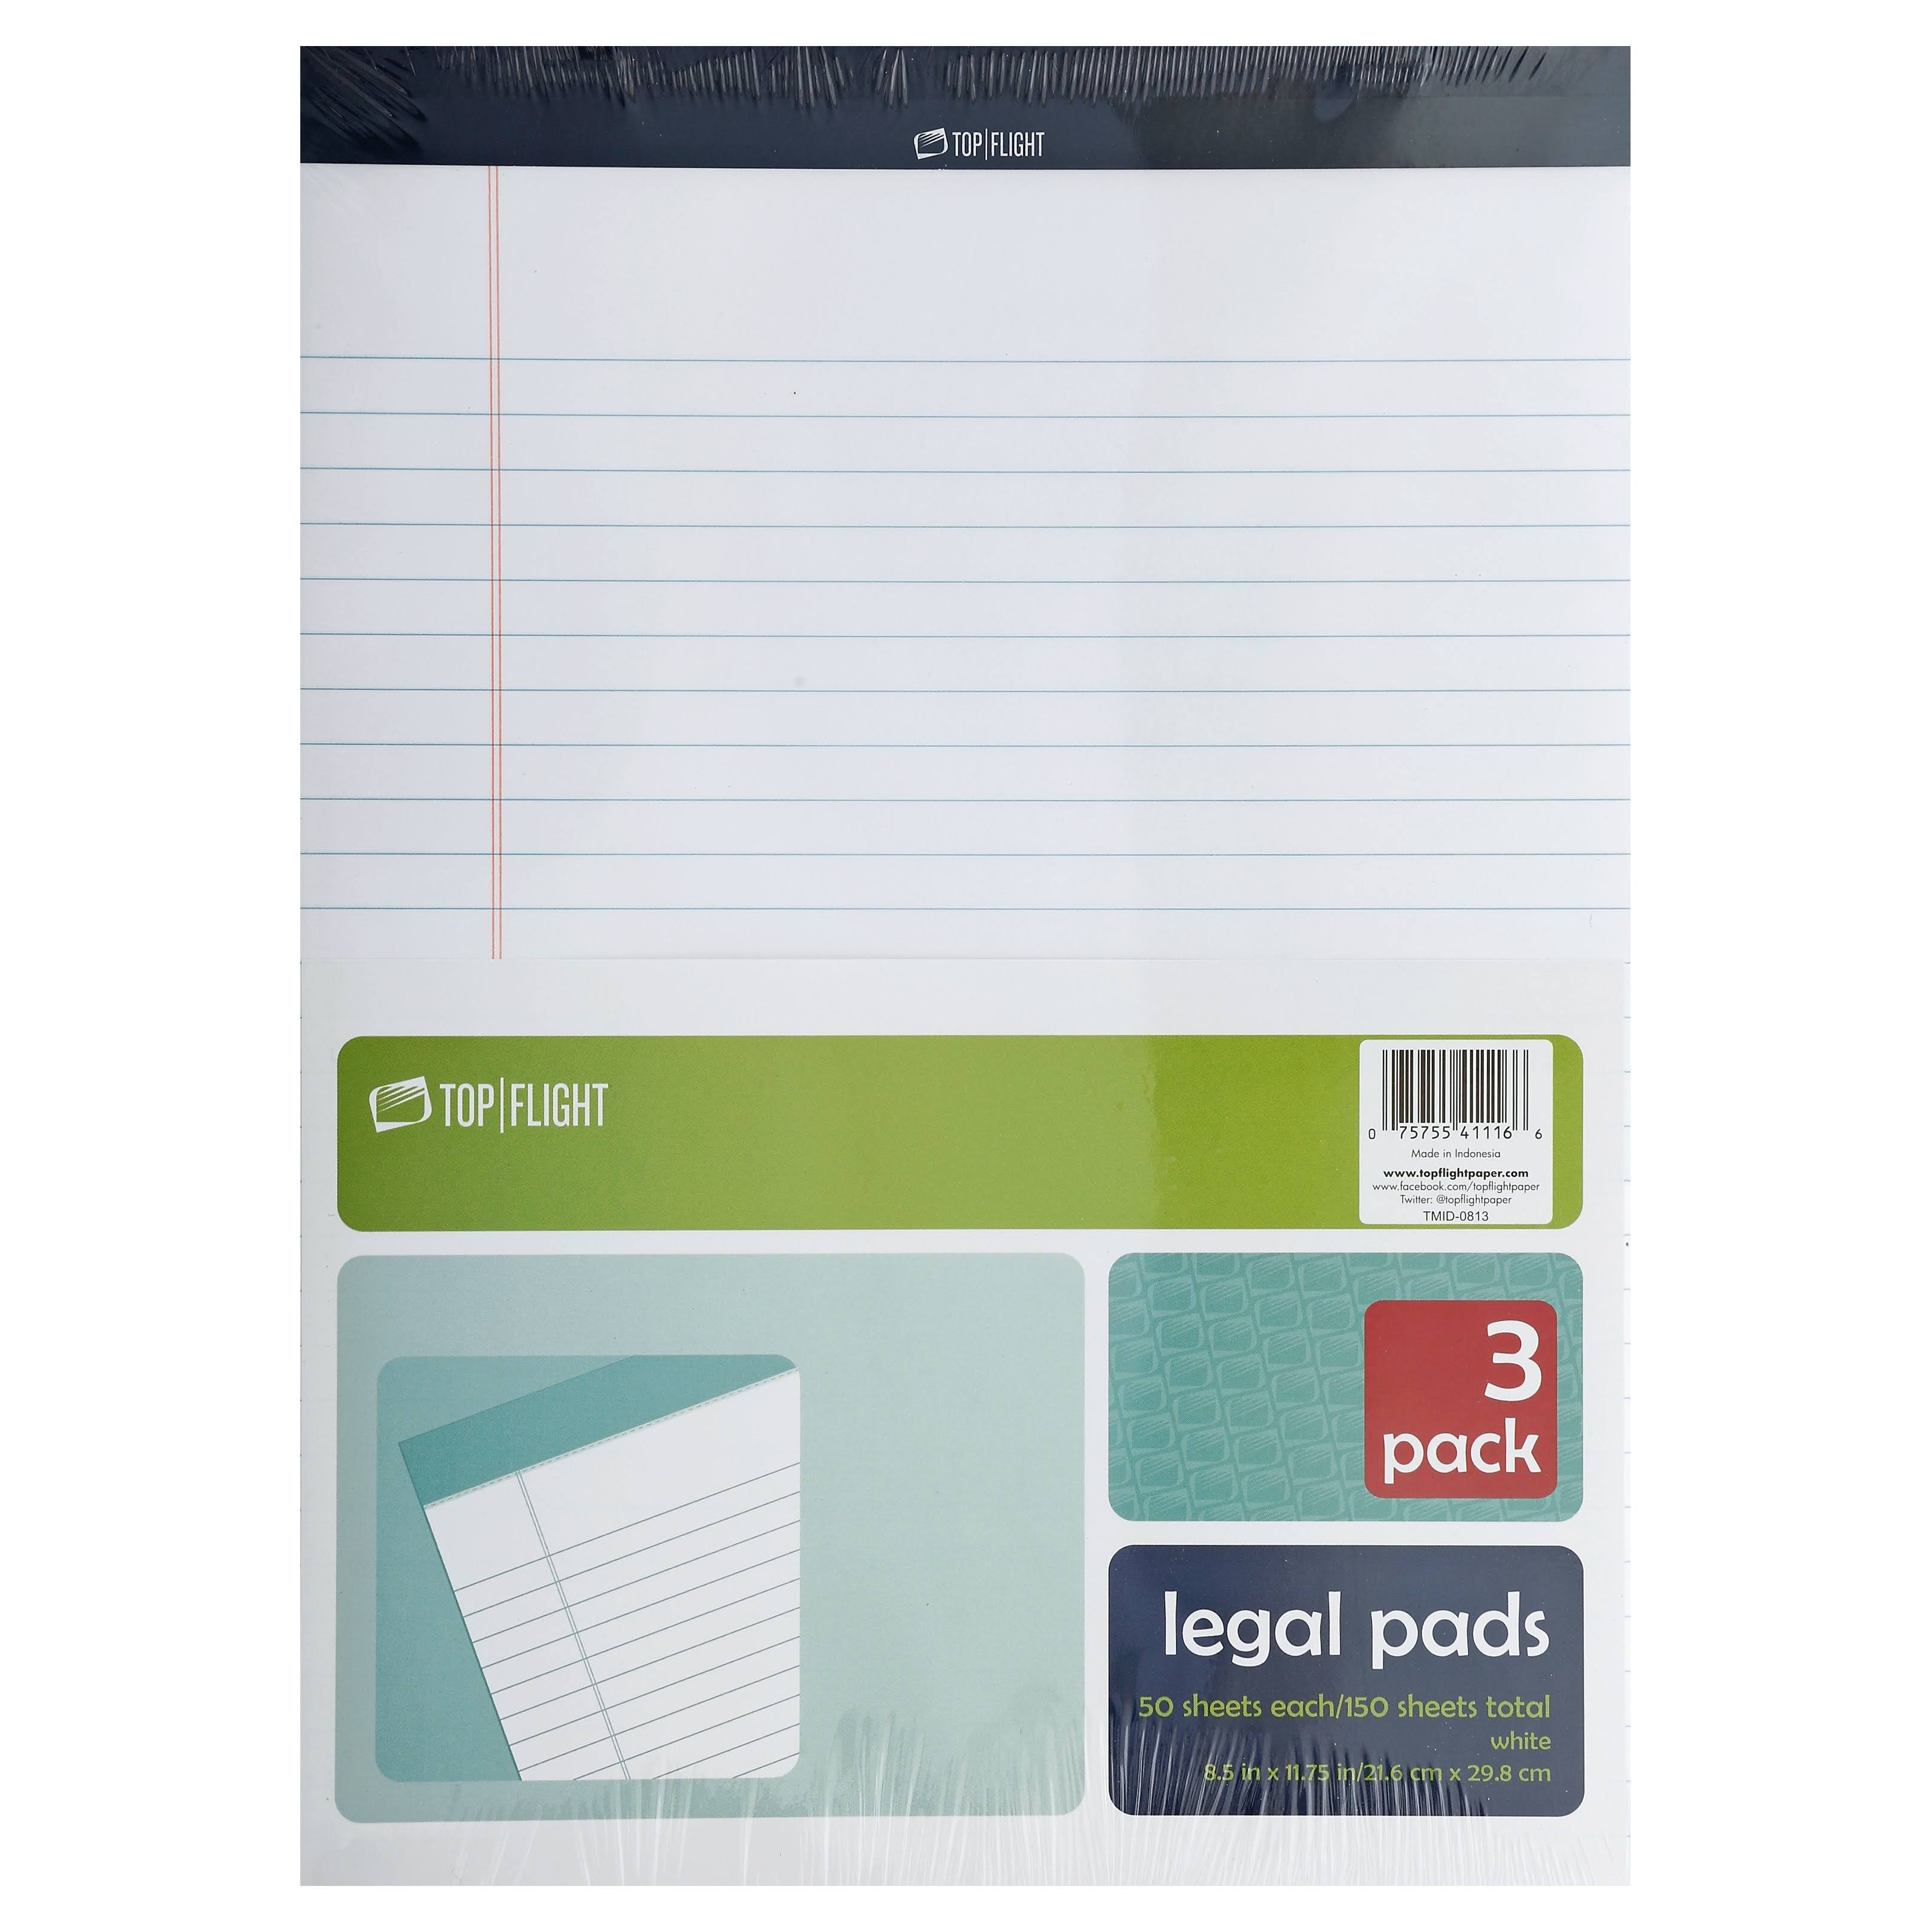 Top Flight Legal Pads, White, 3 Pack - 3 pads